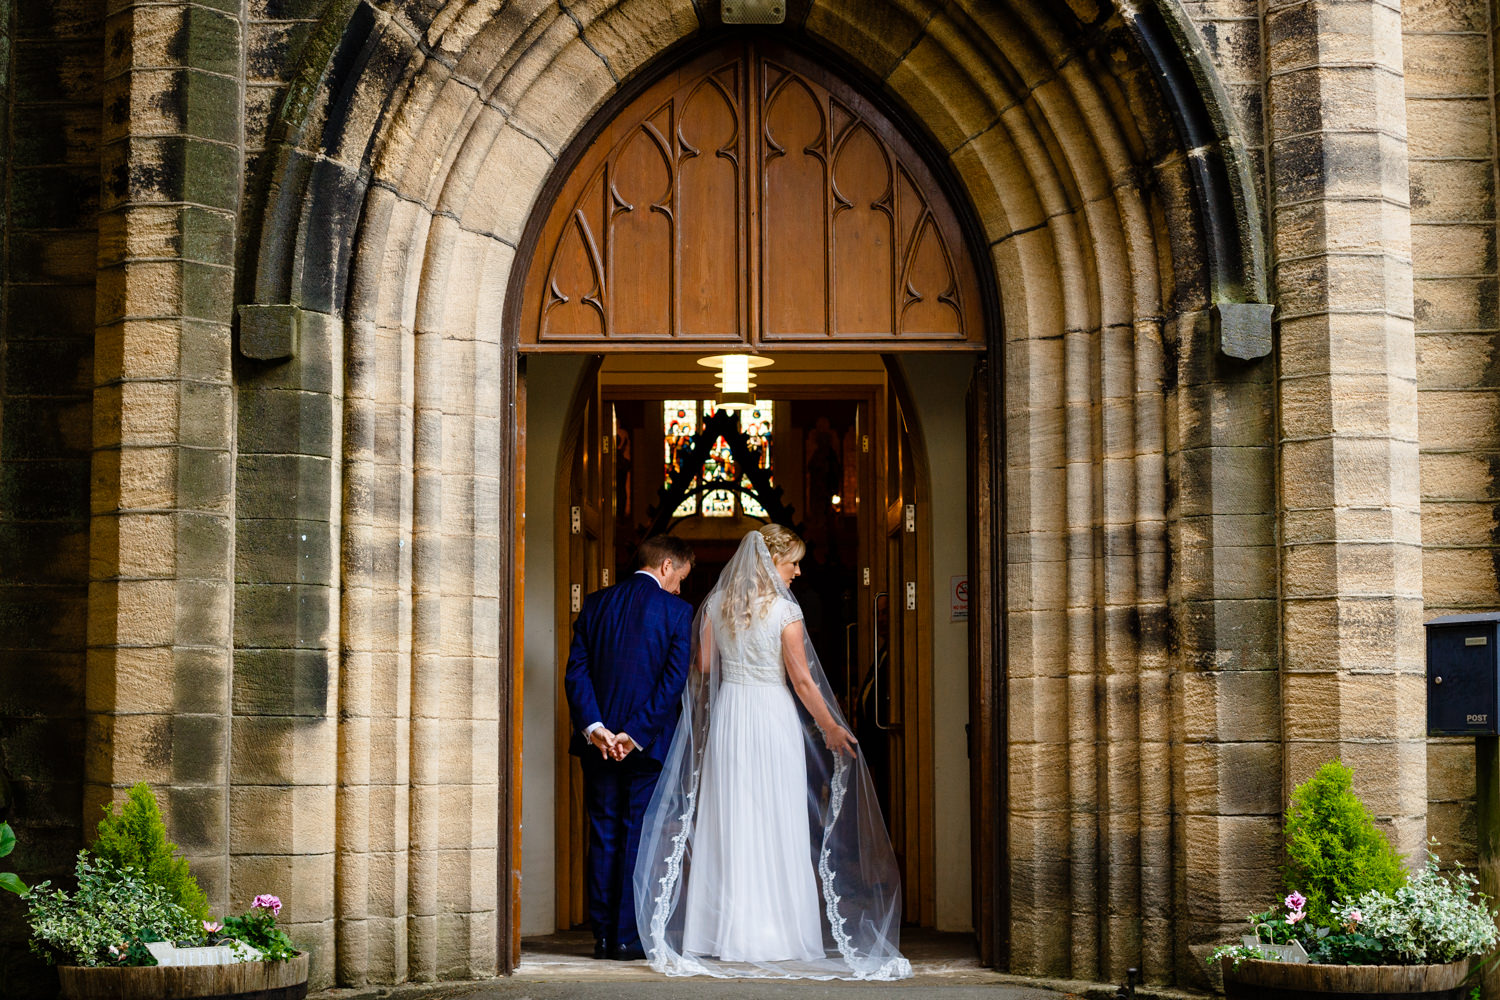 Katie-Luke-Huddersfield-wedding-photographer-Katie-Luke023.jpg